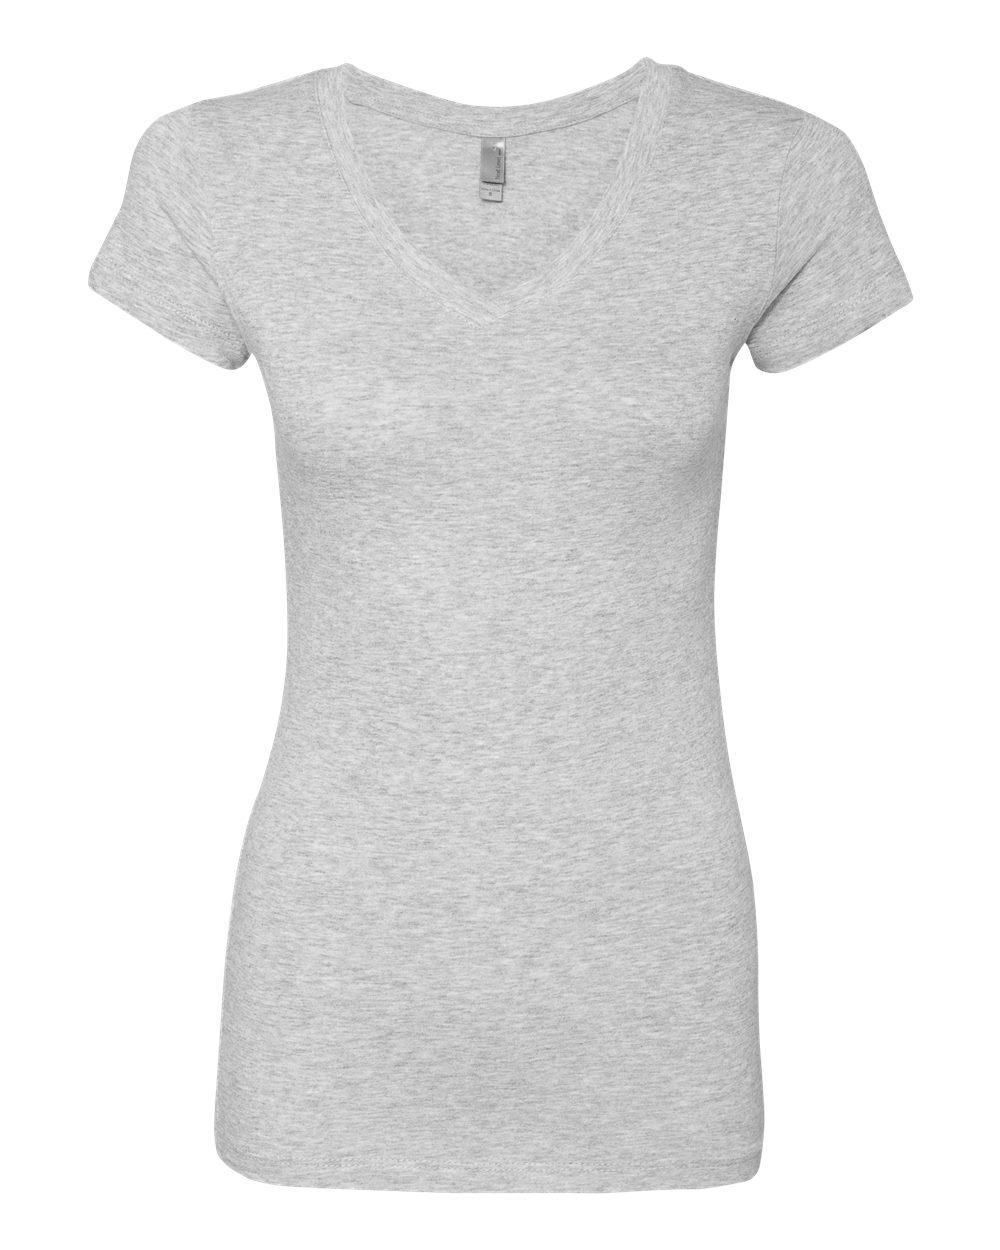 Next_Level_3400L_Heather_Grey_Front_High.jpg